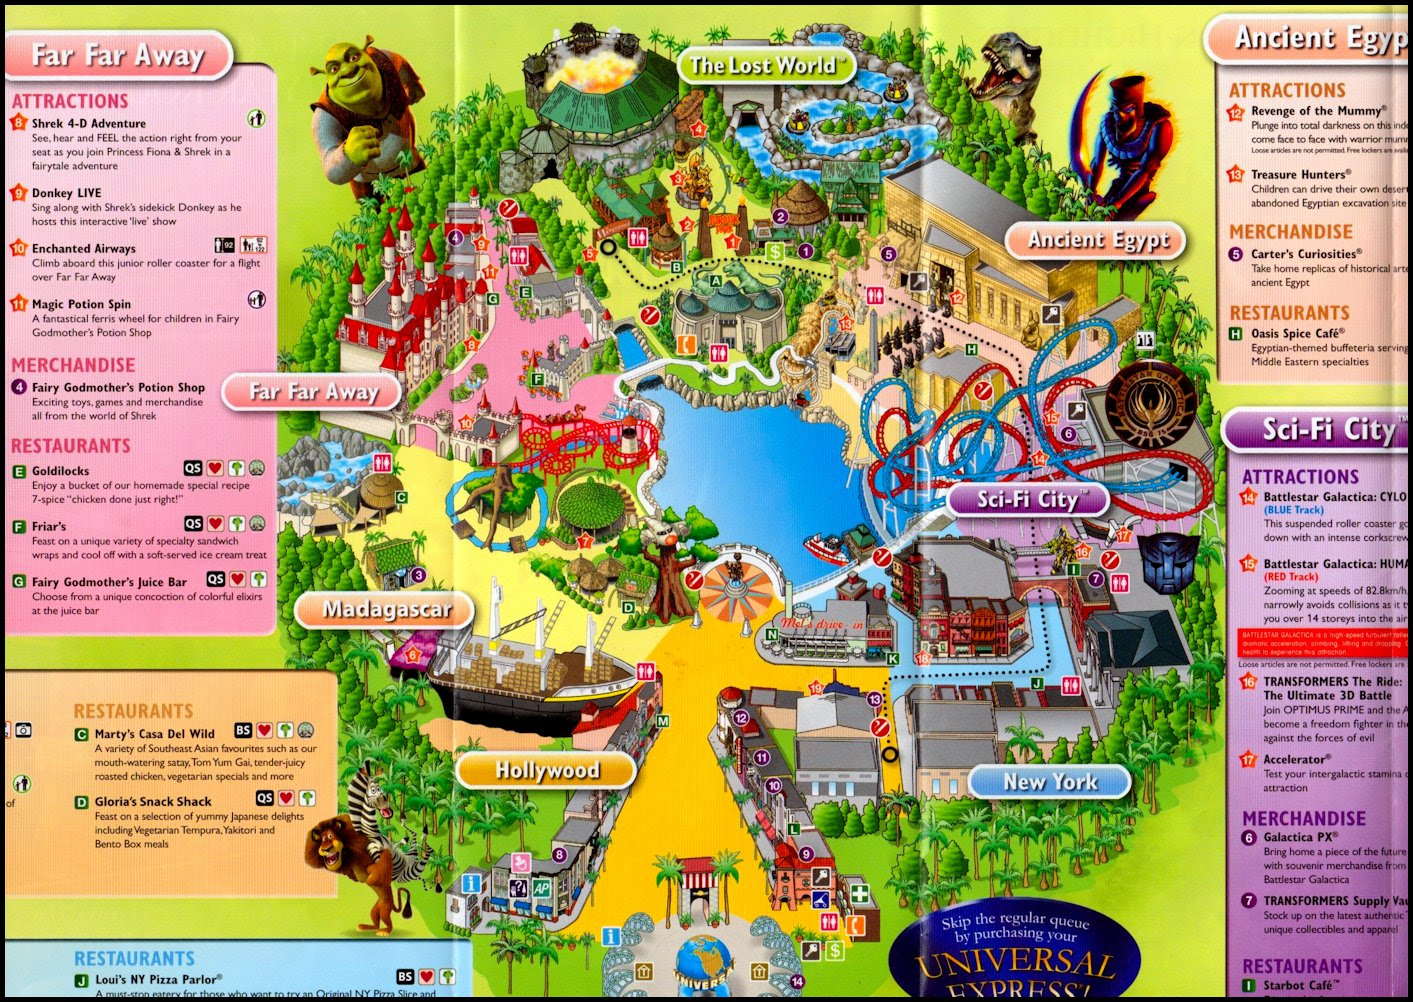 Location Map of Universal Studio Singapore,Universal Studio Singapore location map,Universal Studio Singapore Accommodation Destinations Attractions Hotels Map,universal studio singapore ticket price 2013 photo pictures